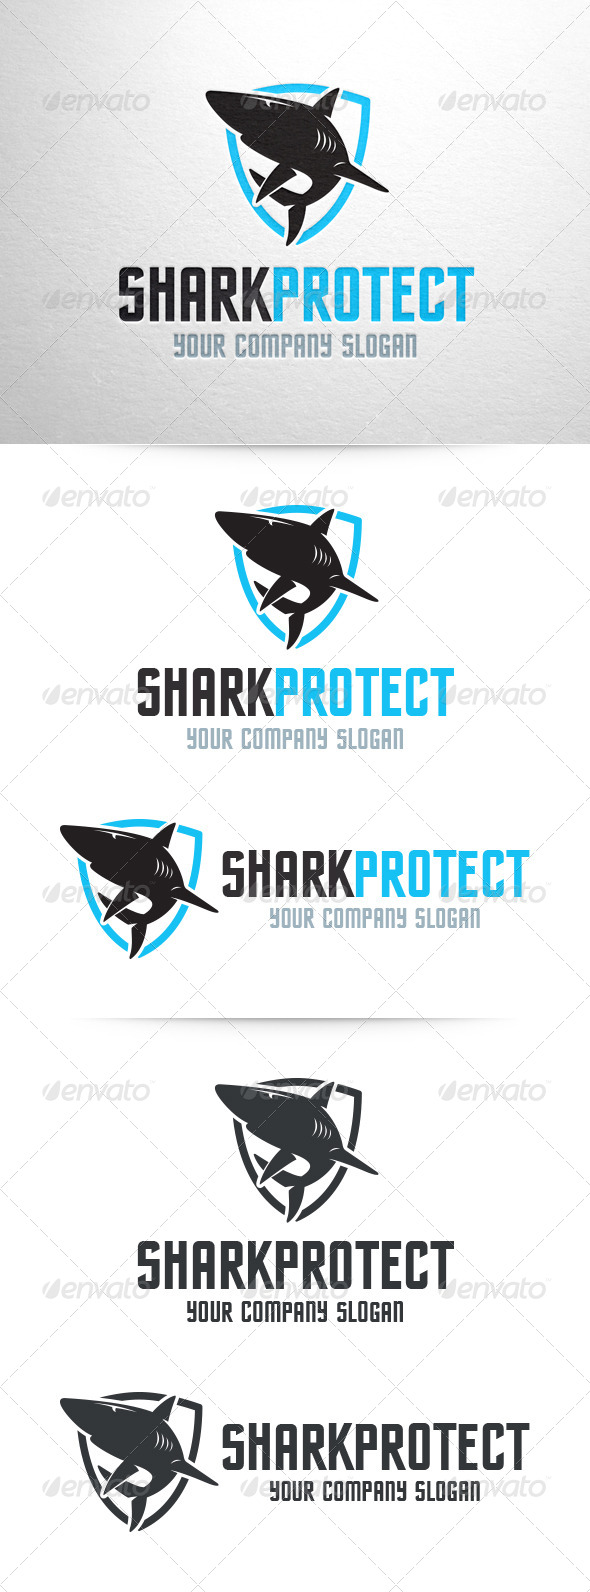 GraphicRiver Shark Protect Logo Template 7122110